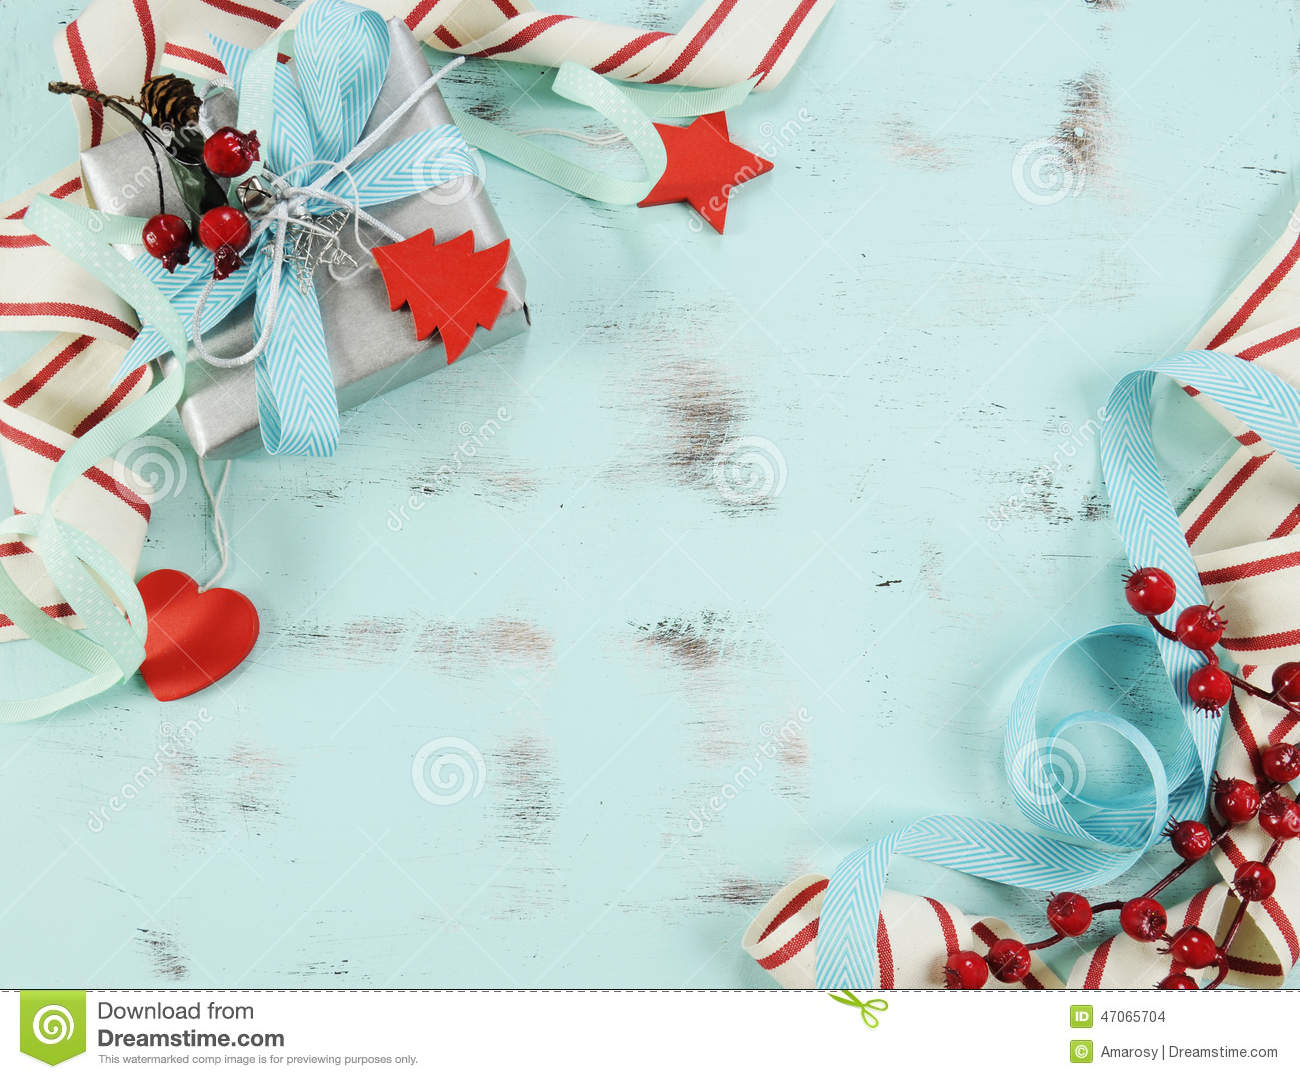 modern red and white christmas decorations on aqua blue wood background - Teal And Red Christmas Decorations